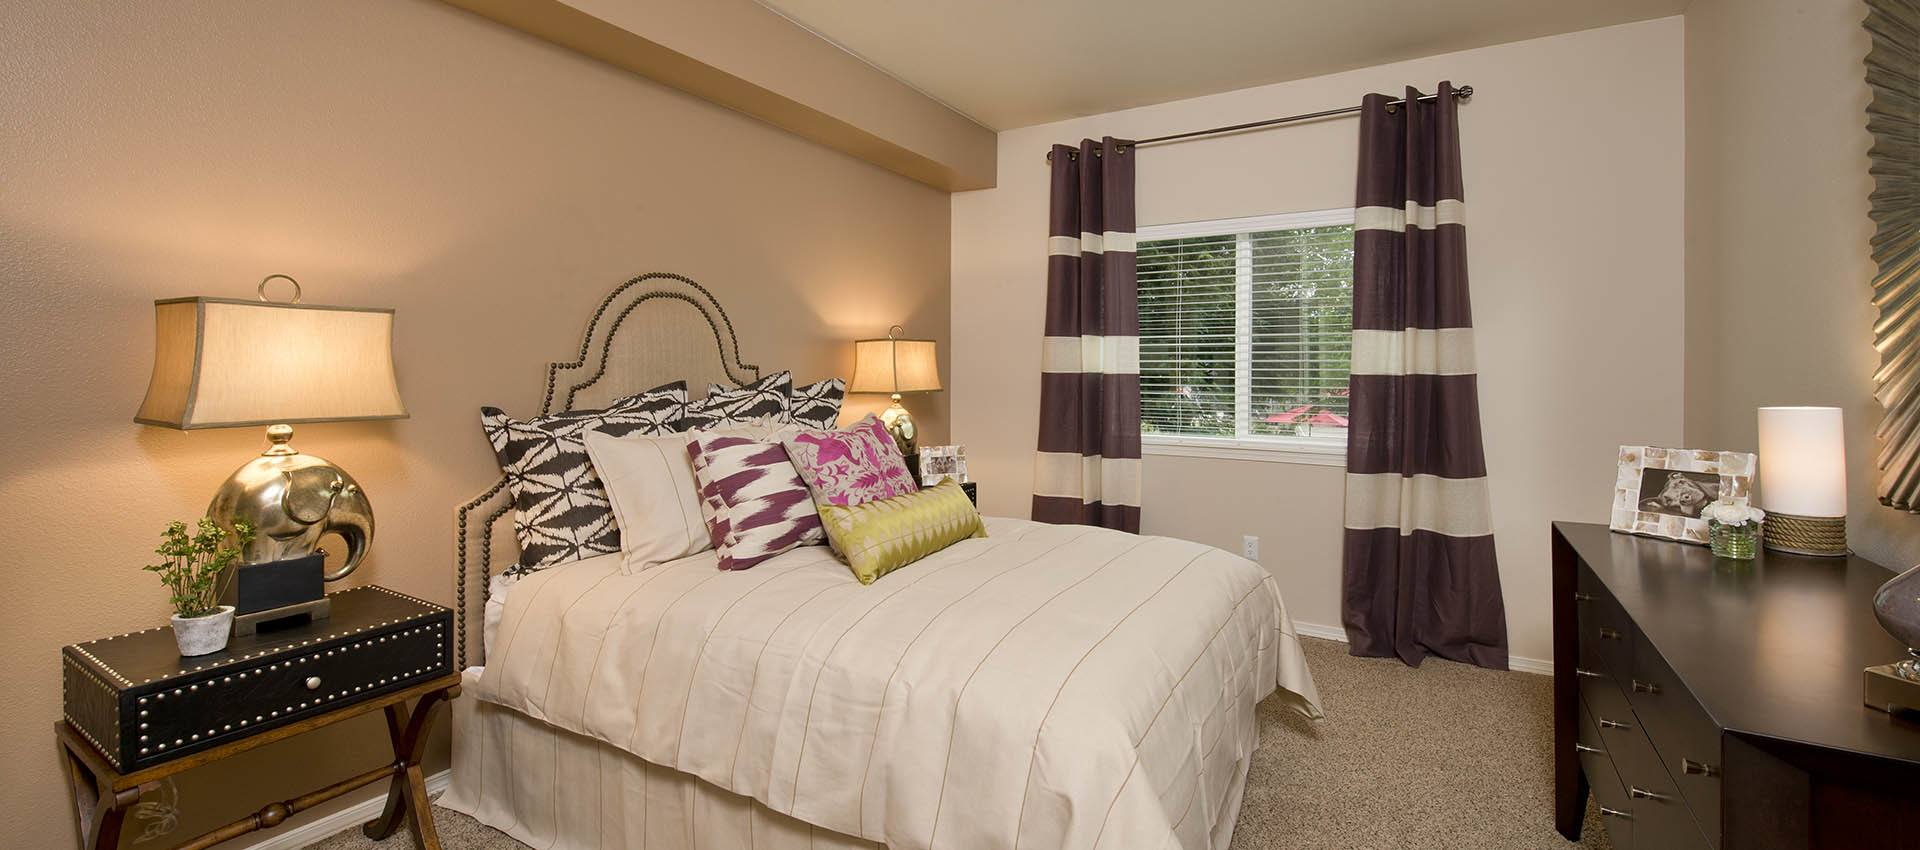 Large Bedroom at Altamont Summit in Happy Valley, OR